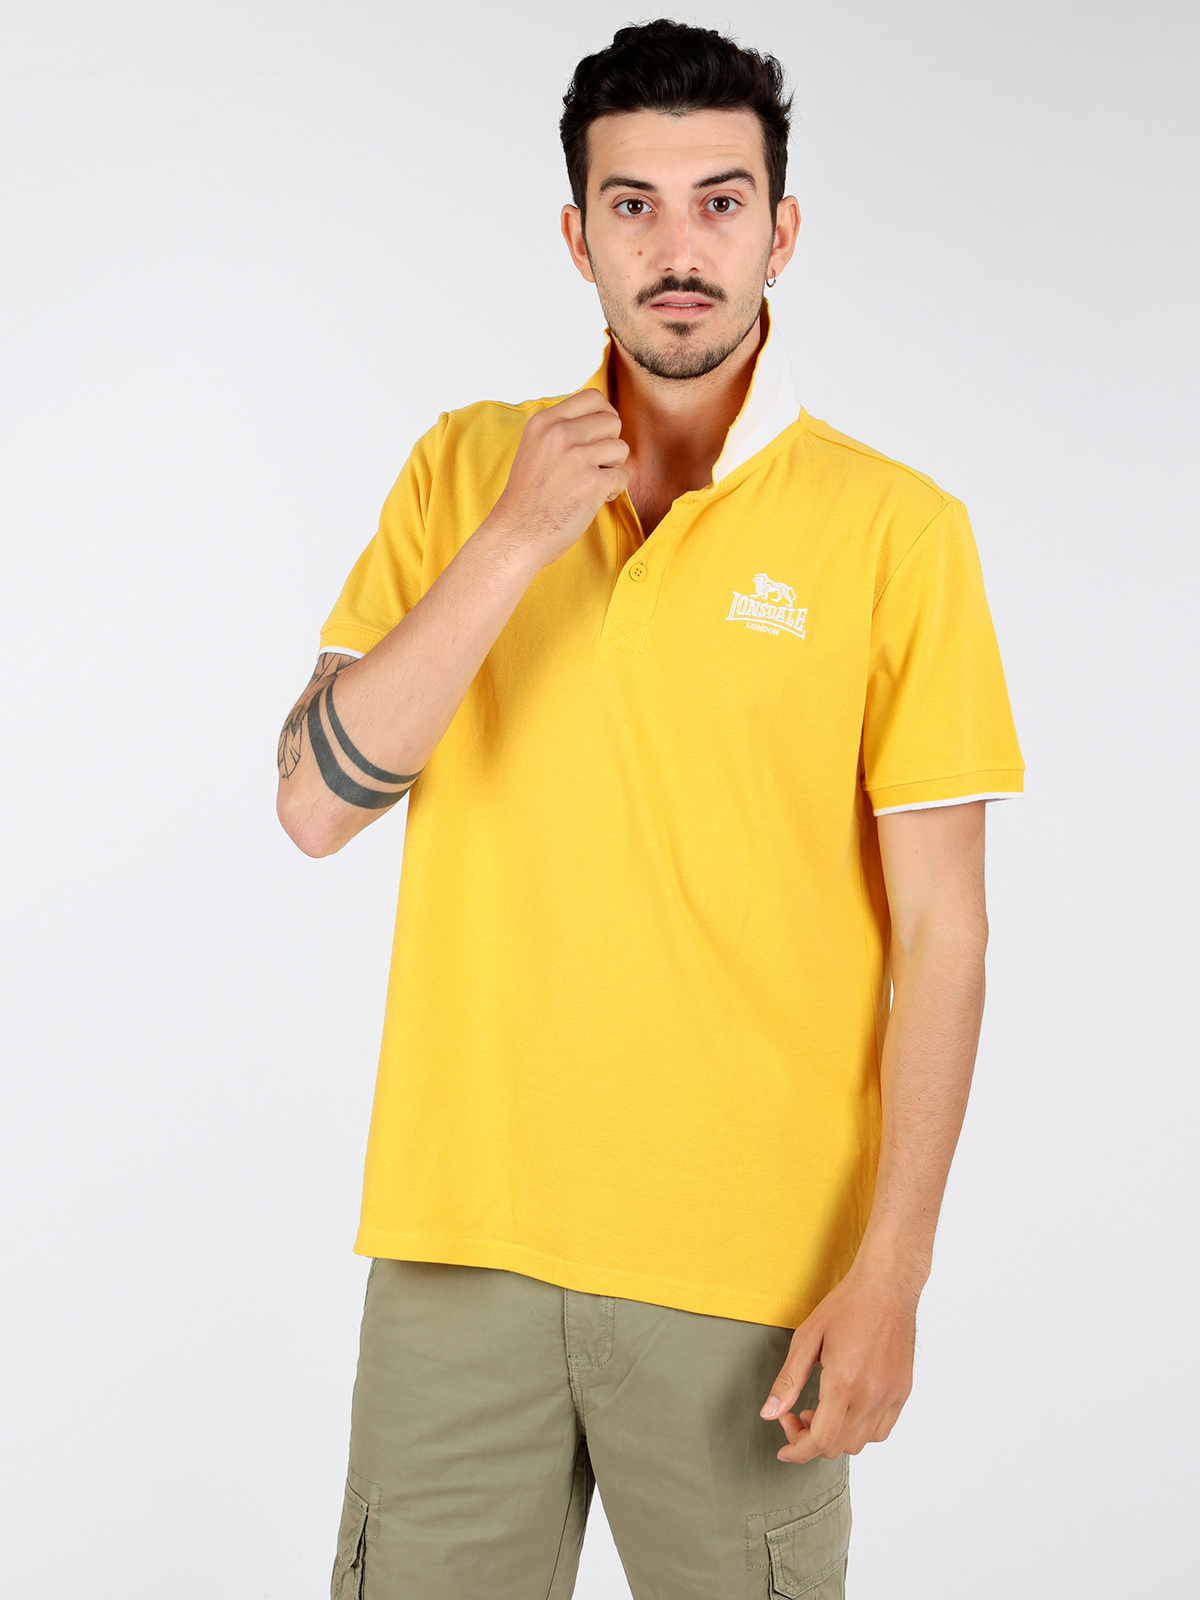 Men's   polo   shirt short sleeve